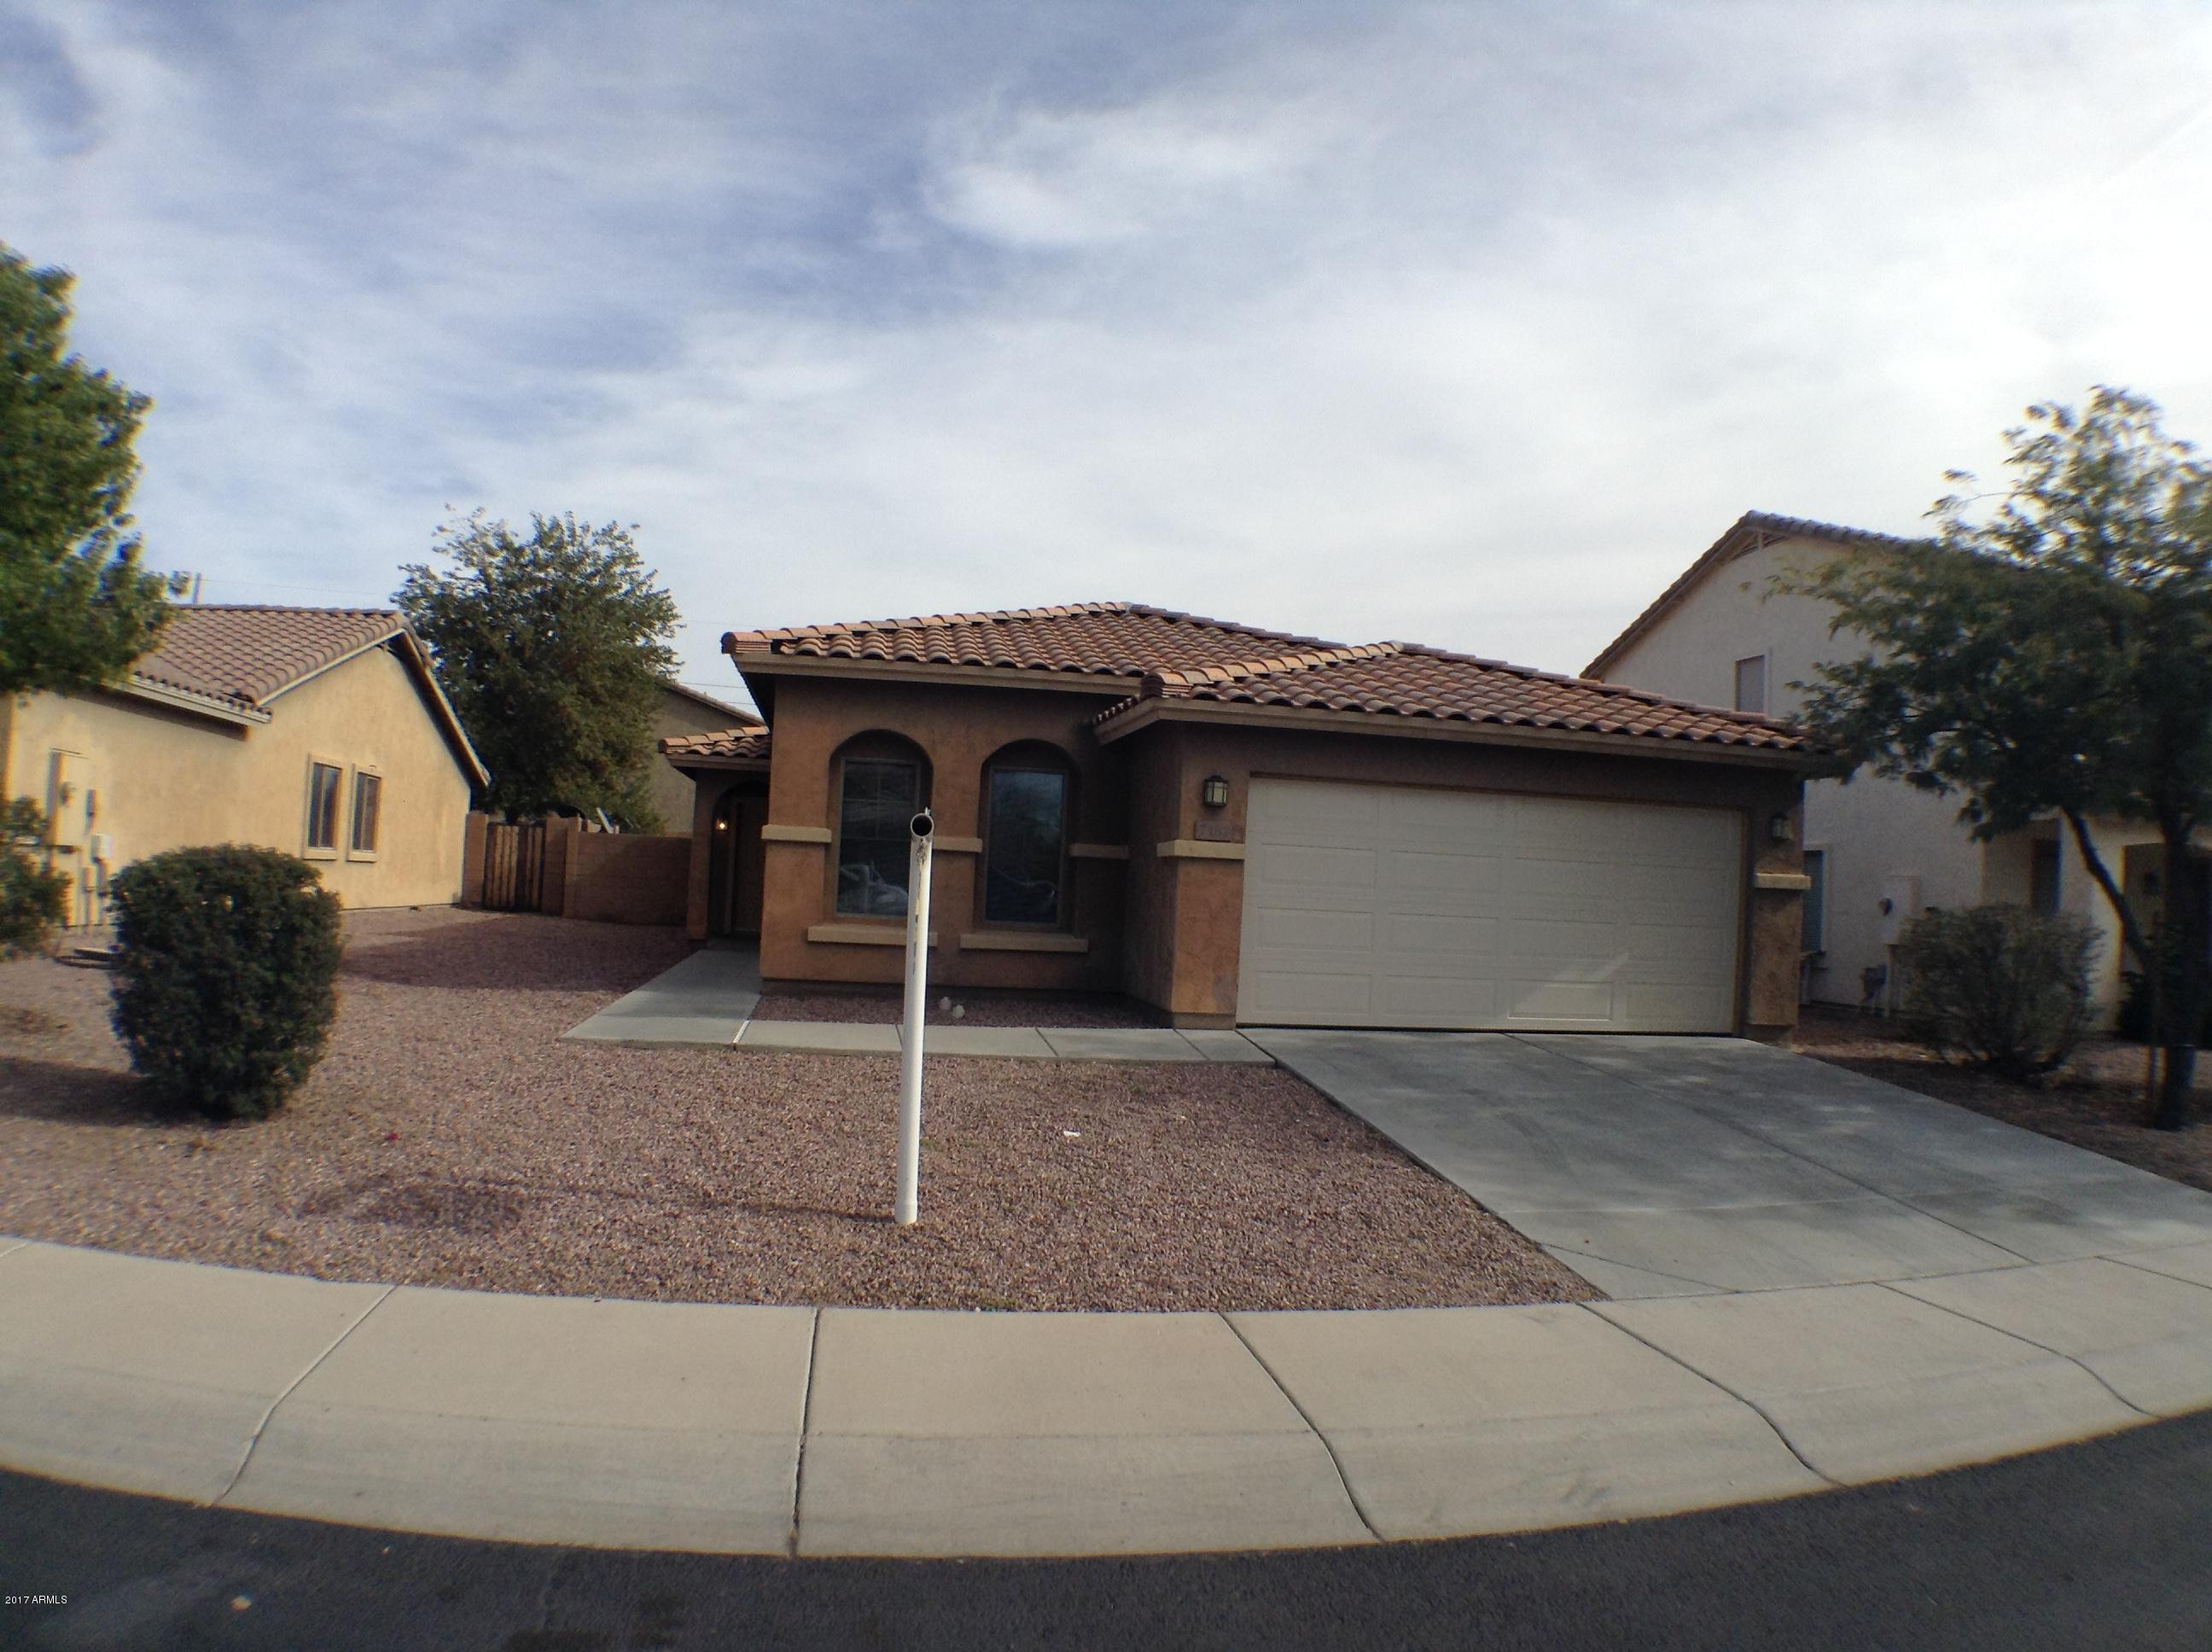 7187 SUNRISE Way, Buckeye, Arizona 85326, 3 Bedrooms Bedrooms, ,2 BathroomsBathrooms,Residential Rental,For Rent,SUNRISE,6217613